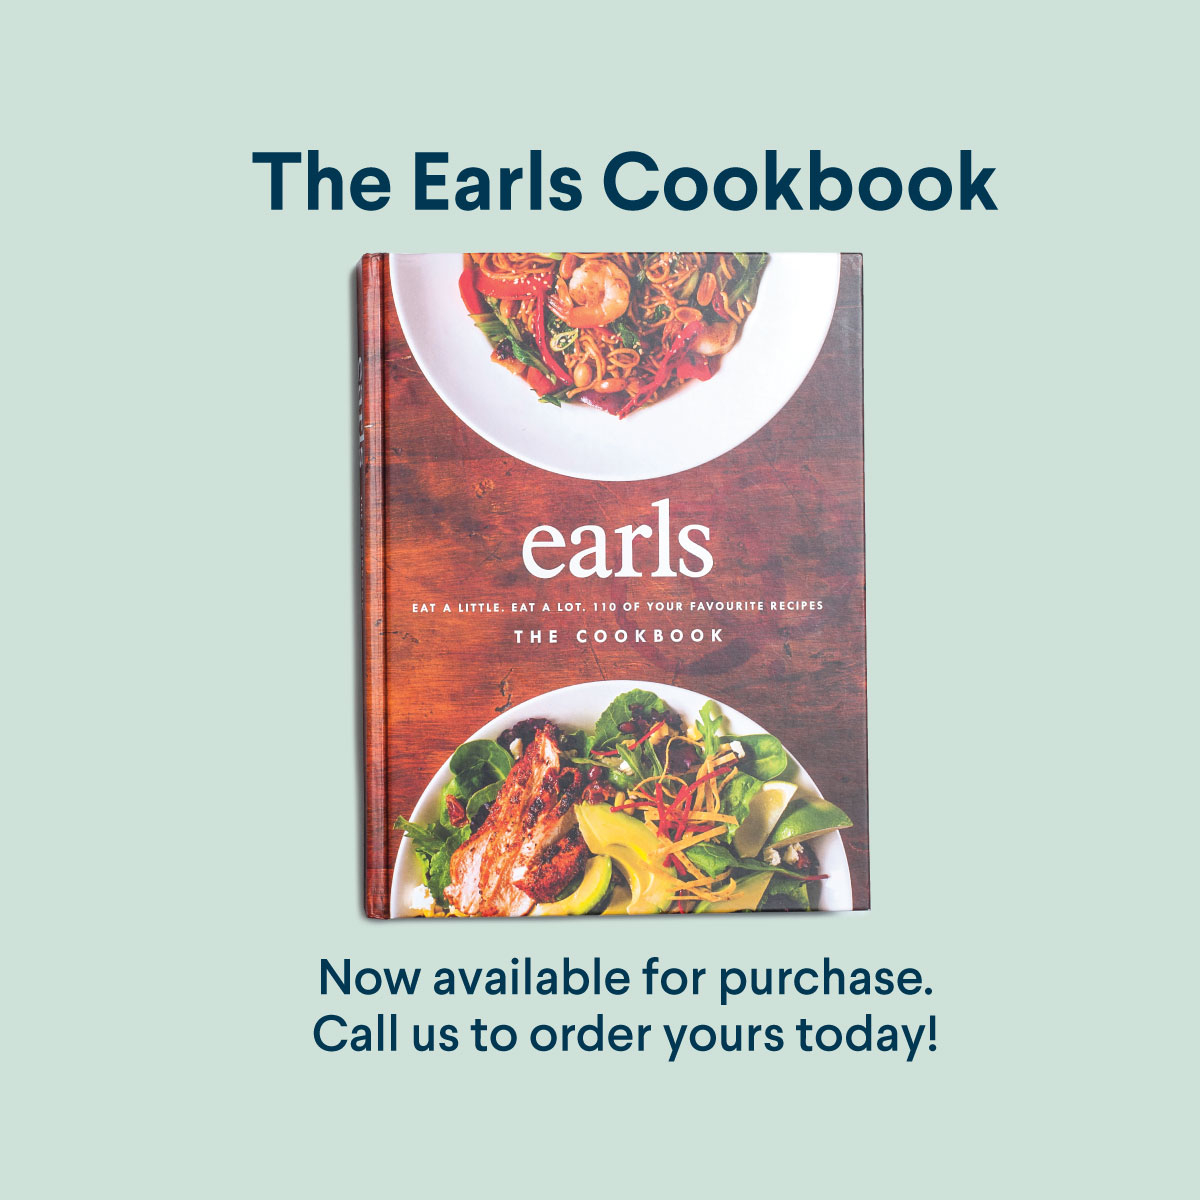 EARLS COOKBOOK — Missing your Earls fix? Put your chef skills to the test and whip up some of your favourite dishes at home with our very own #EarlsCookbook! And yes, this includes our famous Mediterranean Linguine 😍  Pickup only. Not available through online ordering. https://t.co/WGcy9qt1iq